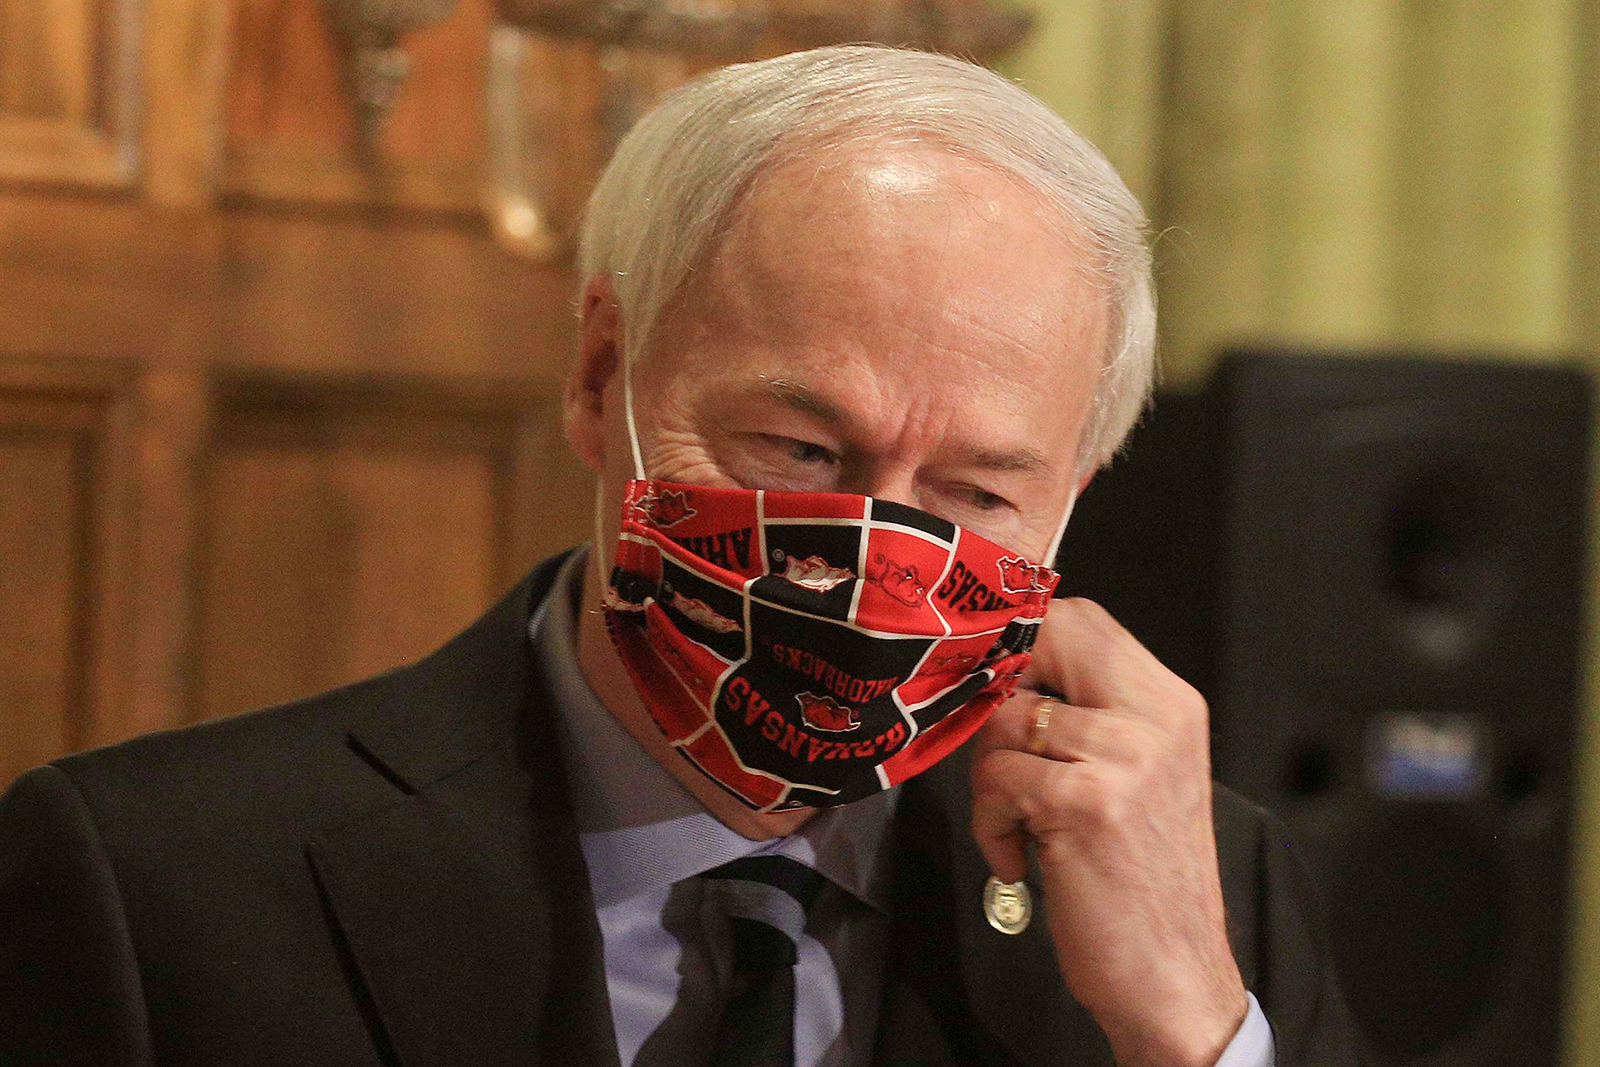 Gov. Asa Hutchinson takes off his Arkansas Razorbacks facemark as he arrives for the daily coronavirus briefing at the state Capitol in Little Rock on April 27.